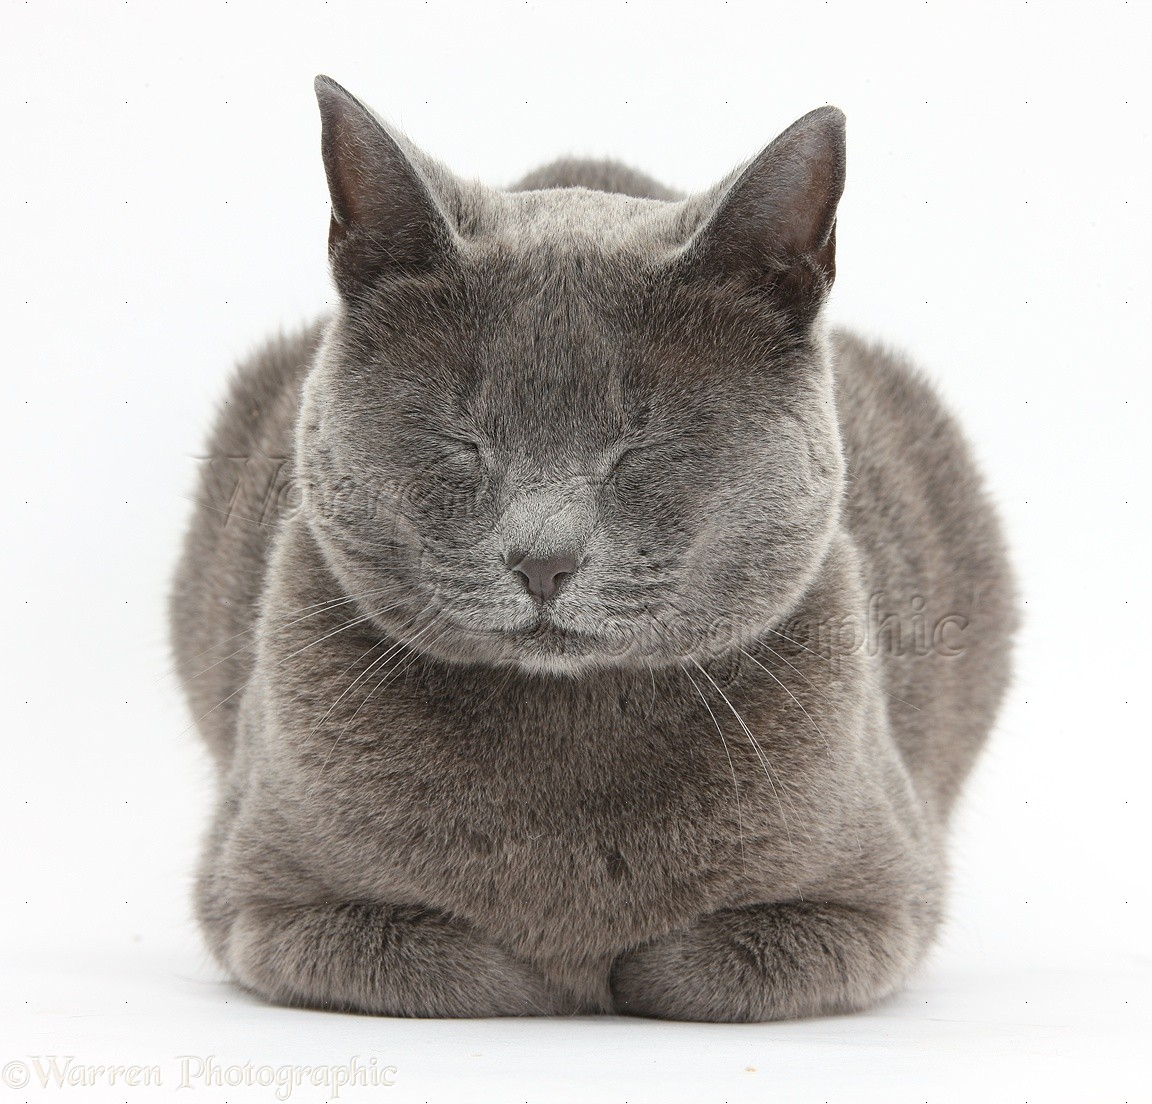 ... russian blue cat on white background royalty free stock photo russian